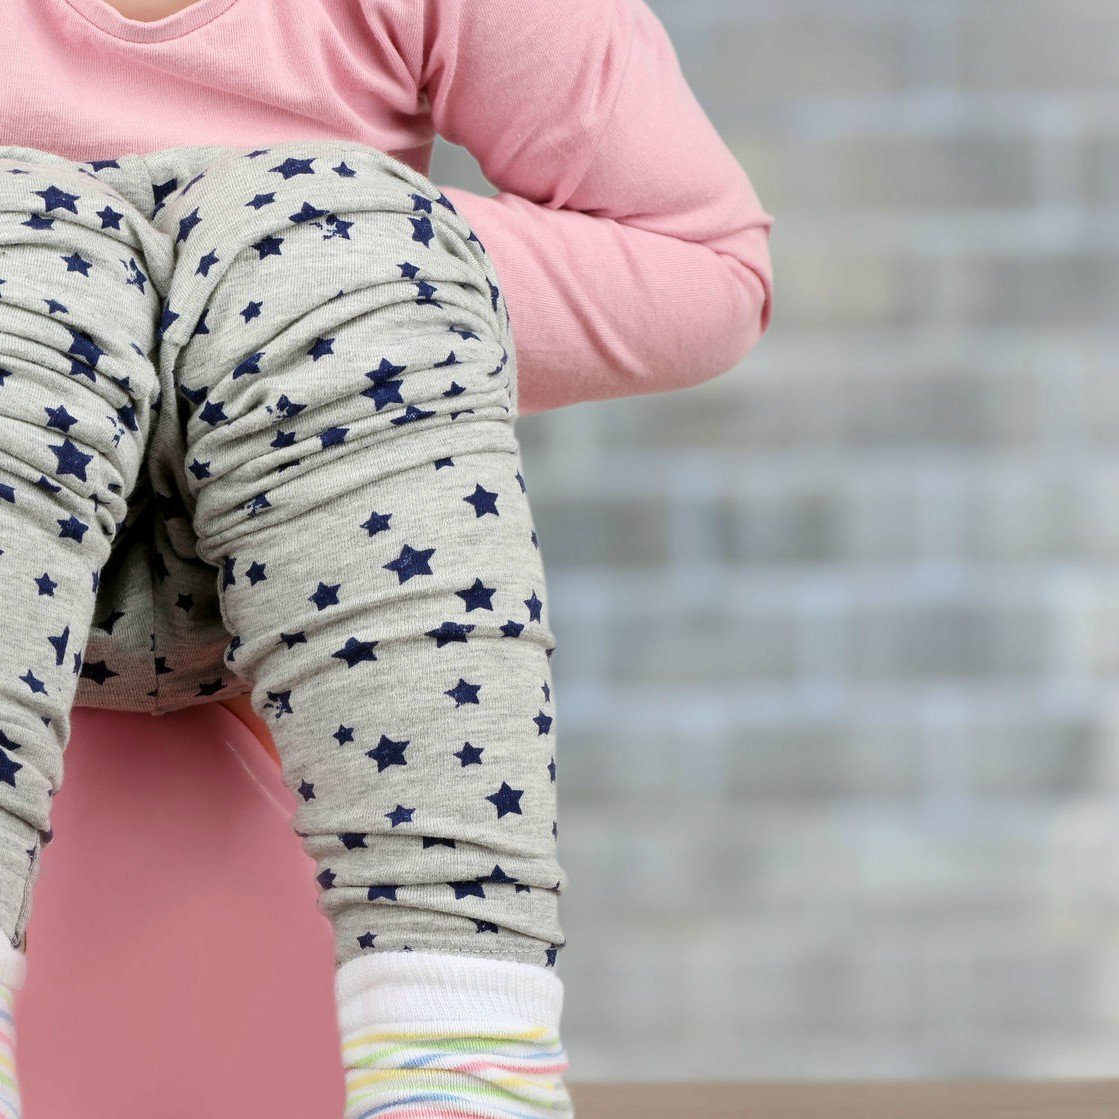 Ditch The Diapers: 5 Signs Your Toddler Is Ready For the Potty